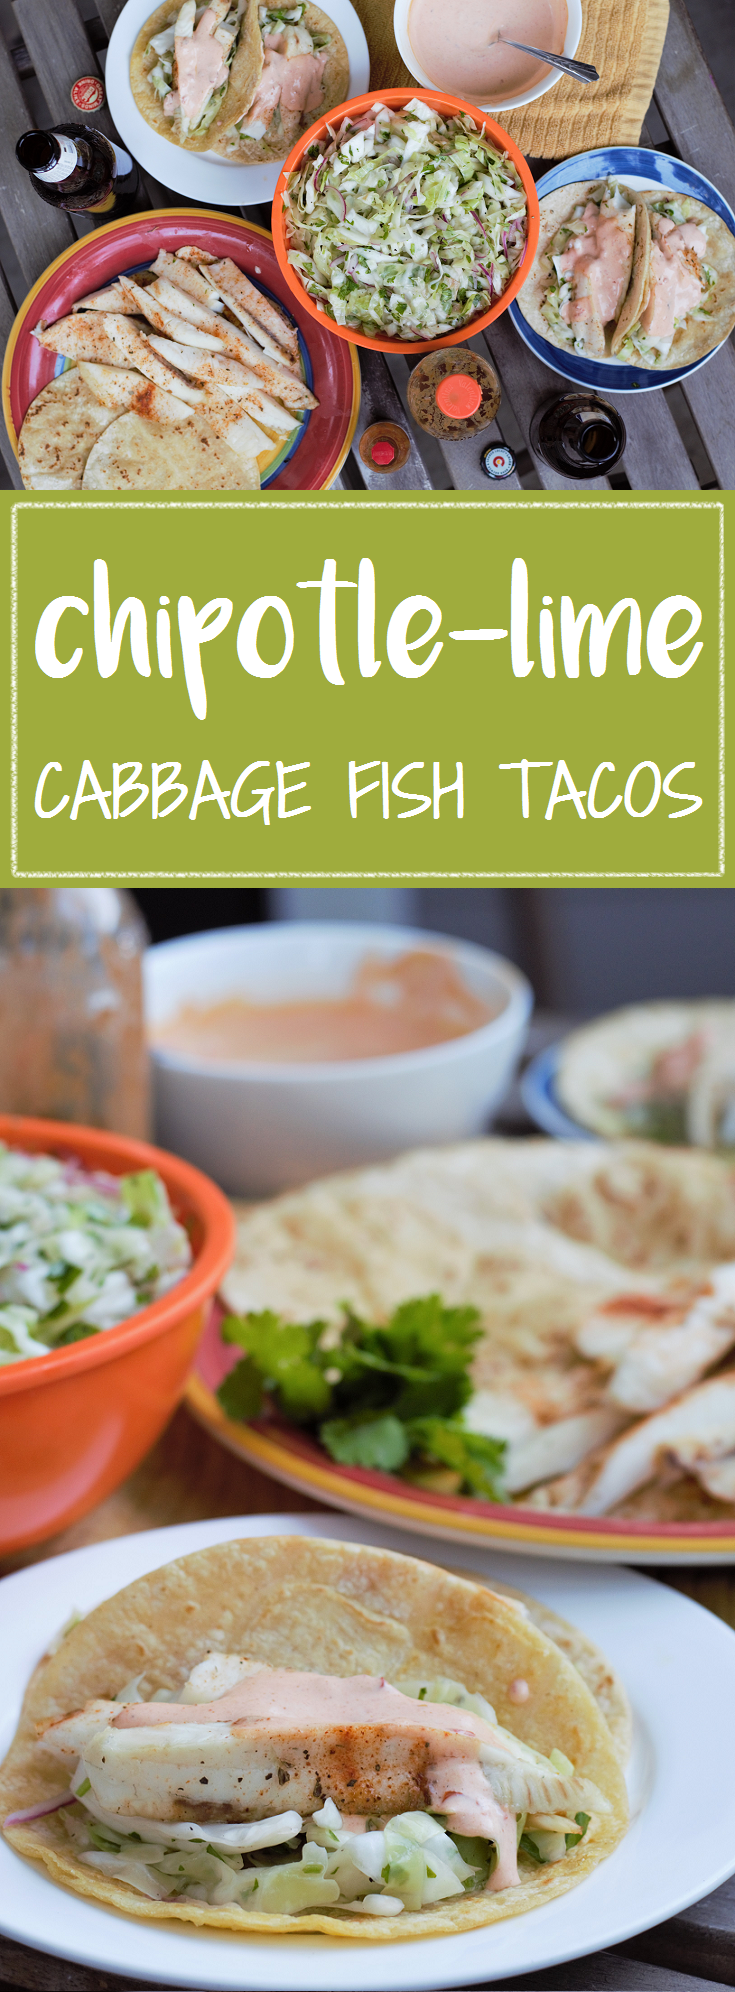 Chipotle-Lime Cabbage Fish Tacos - Mountain Cravings